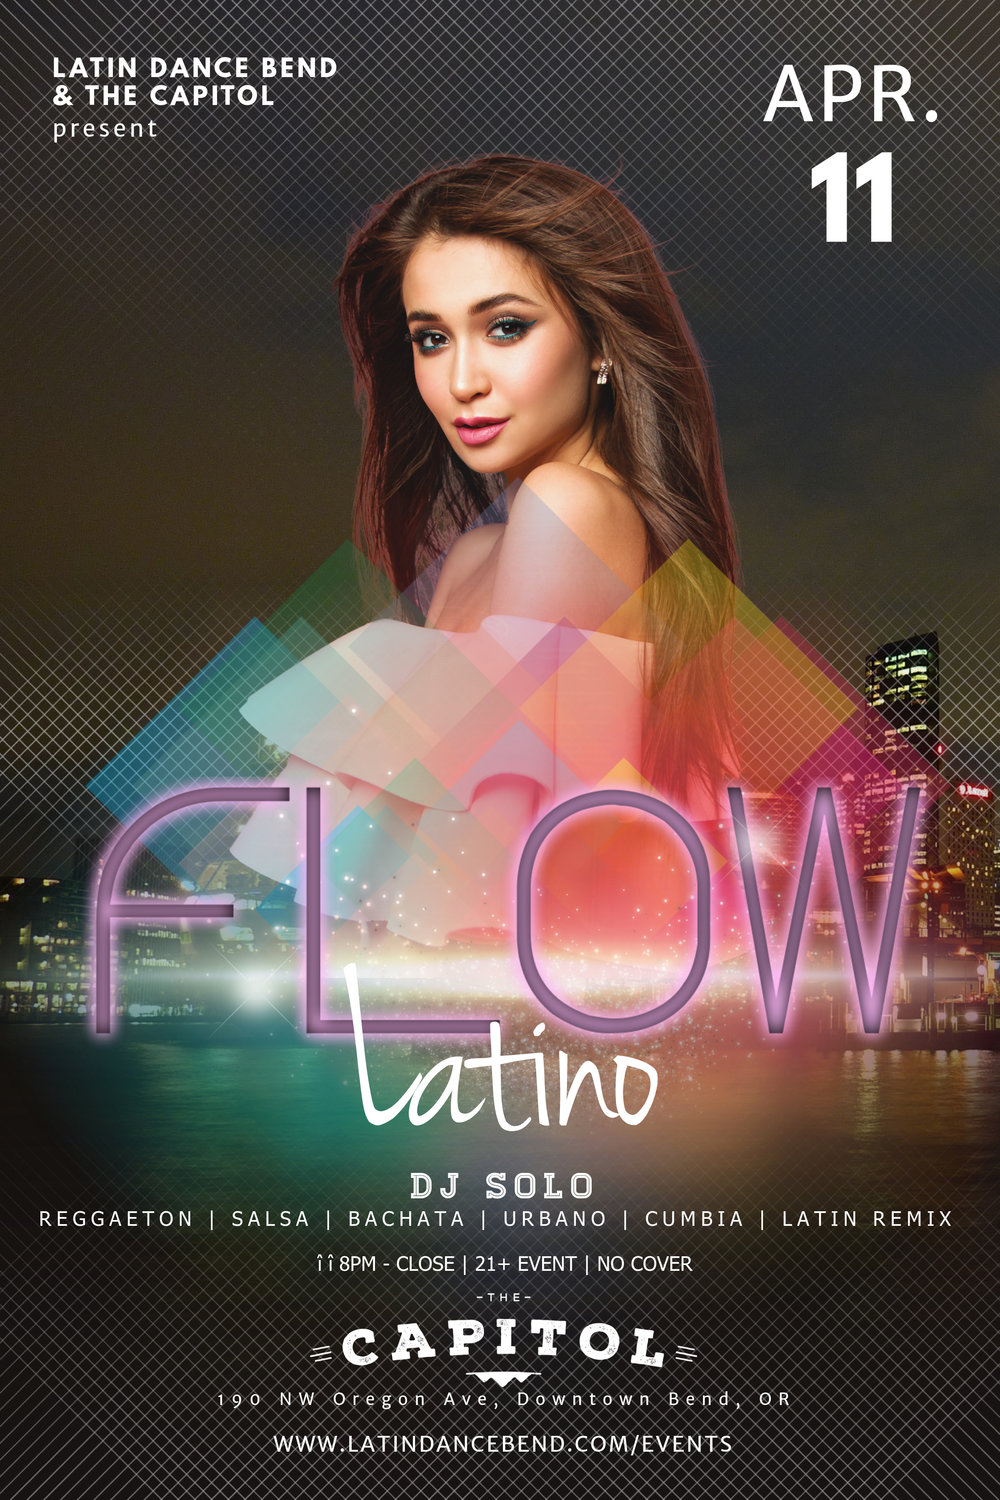 FLOWLatino-April11-TheCapitol.jpg